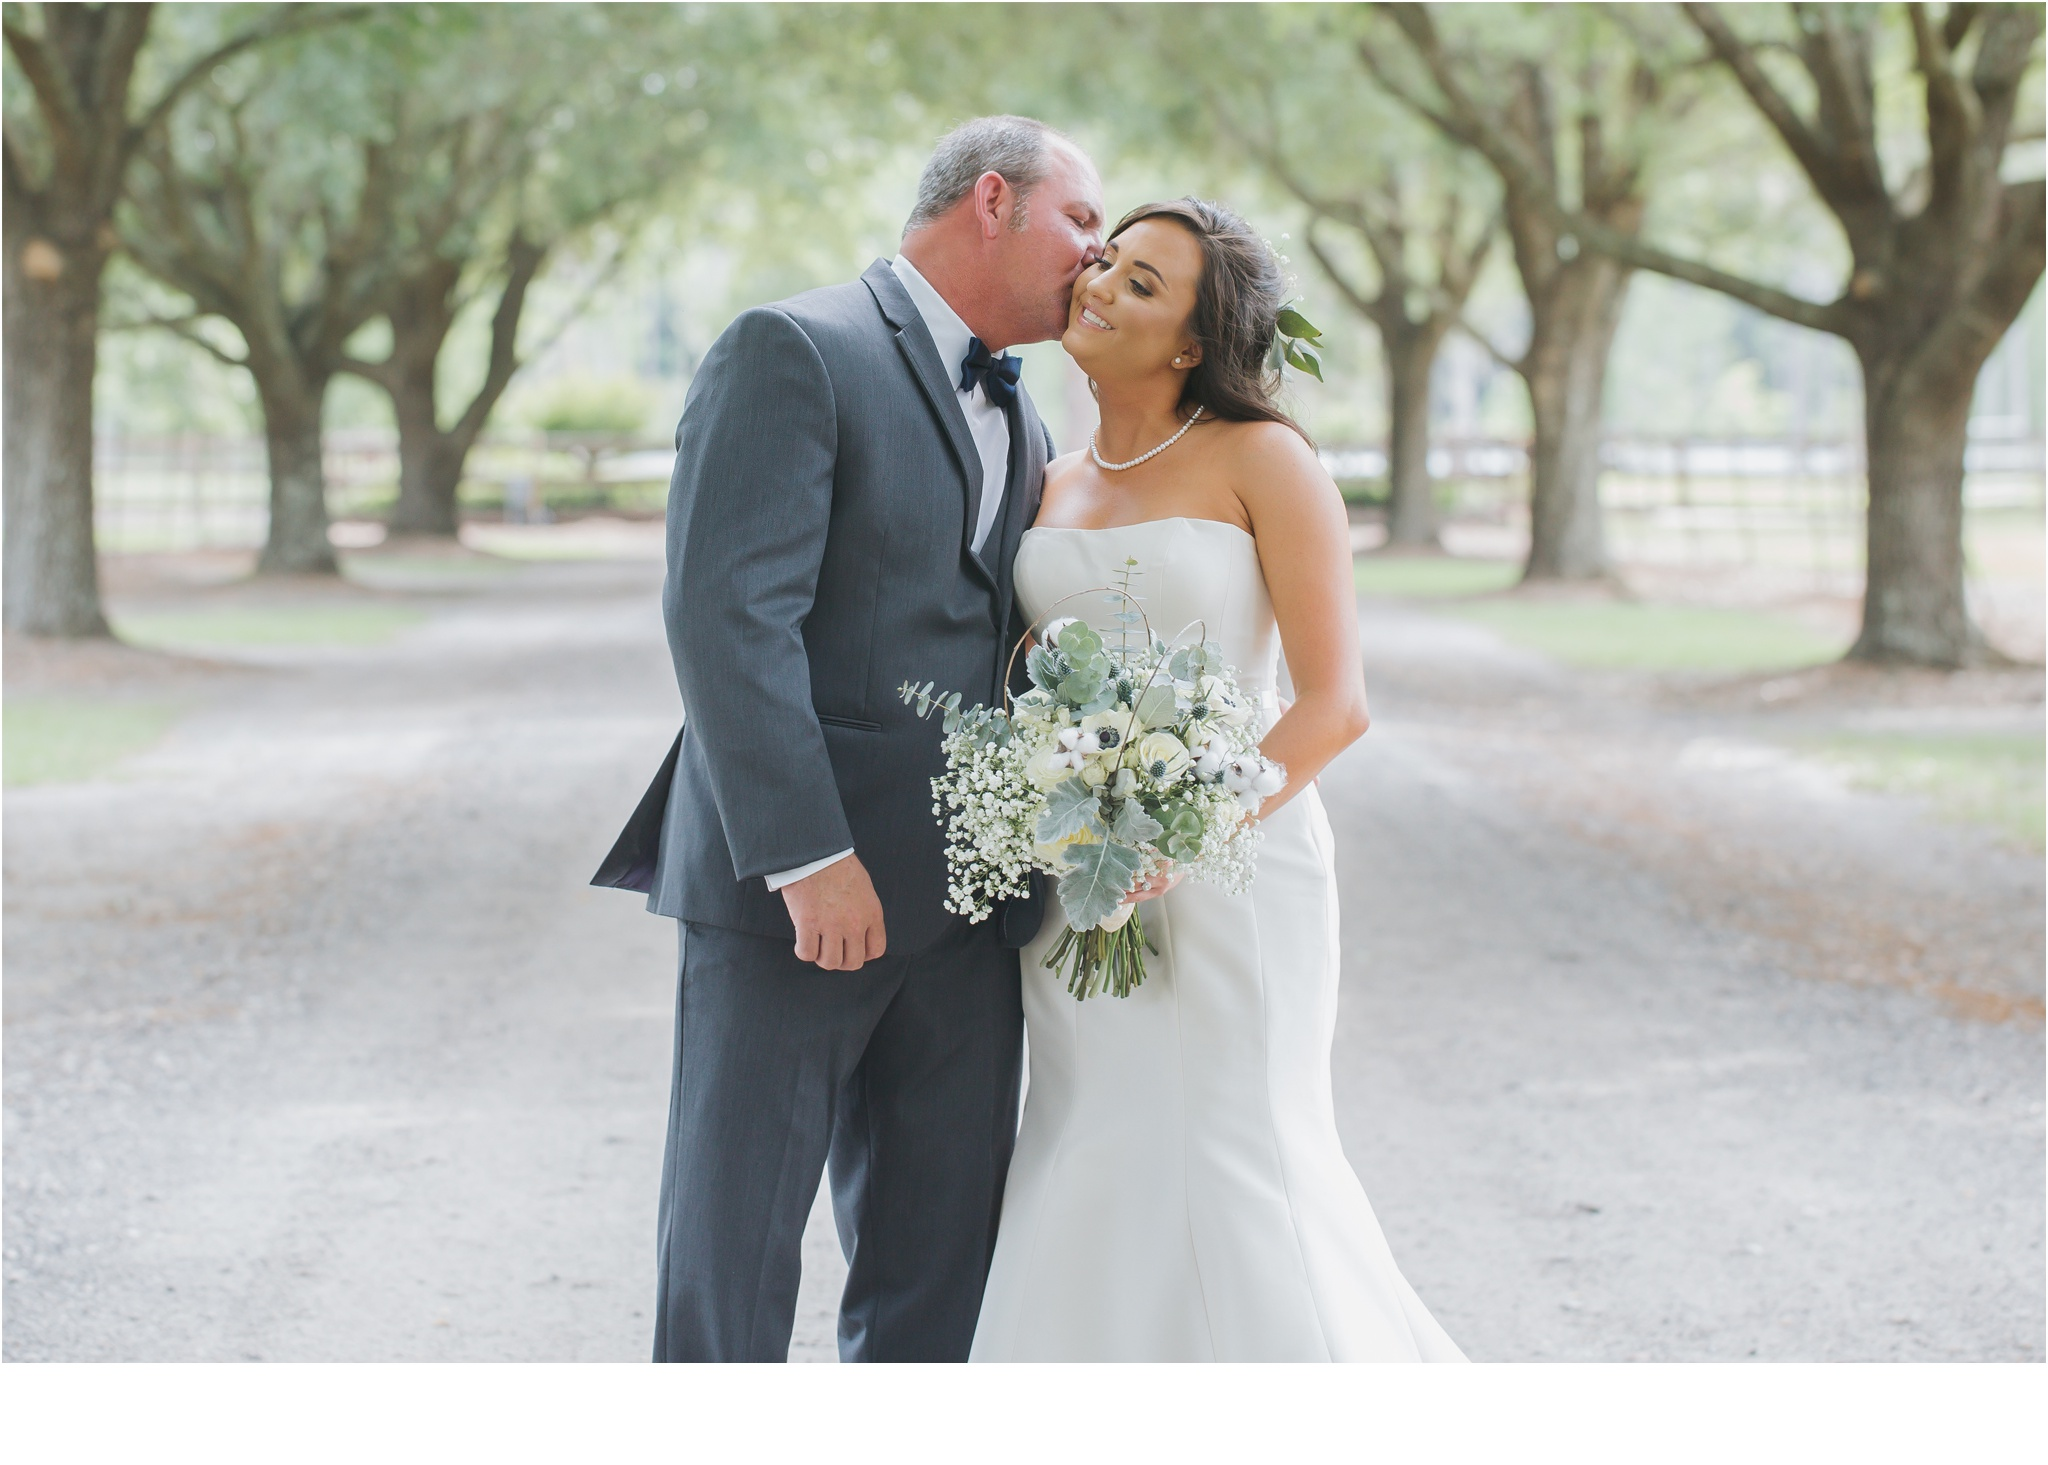 Rainey_Gregg_Photography_St._Simons_Island_Georgia_California_Wedding_Portrait_Photography_0914.jpg